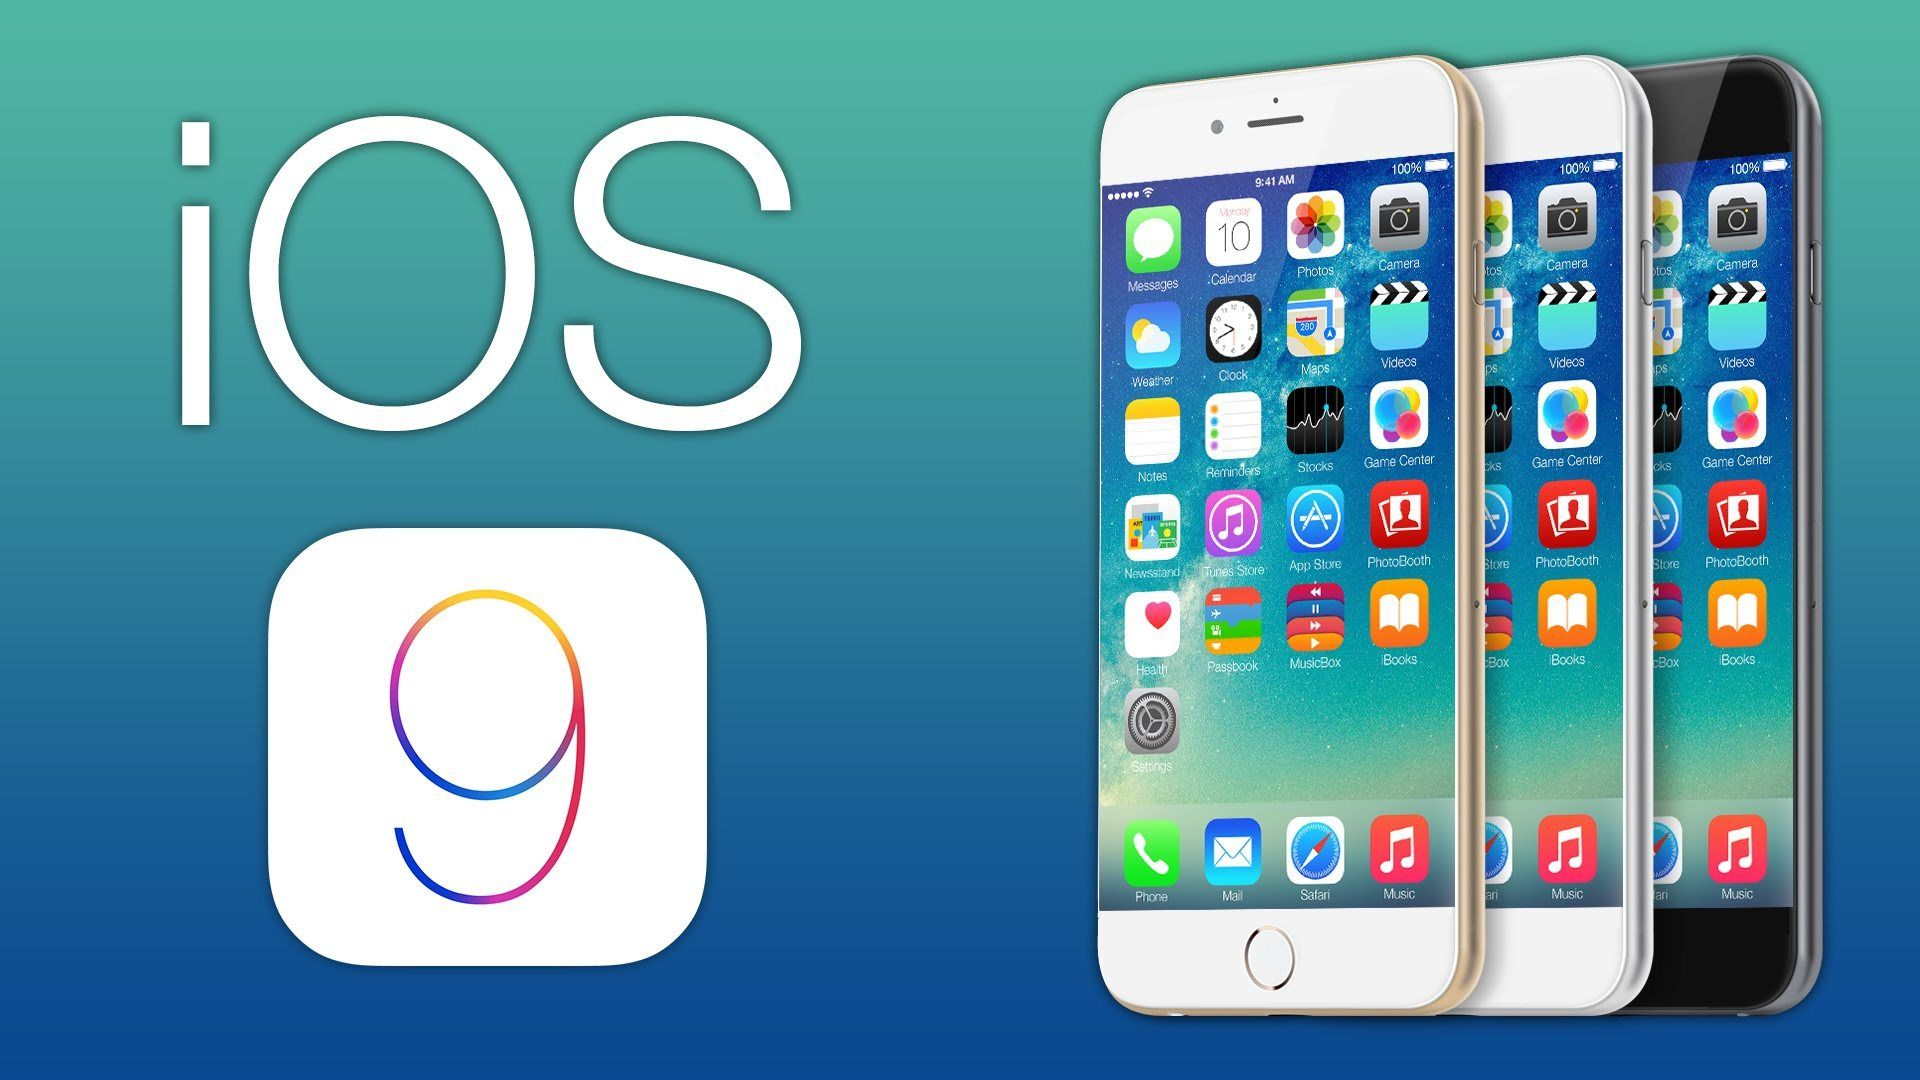 Apple iOS 9   TechSmart News & Reviews   New iphone features, Iphone